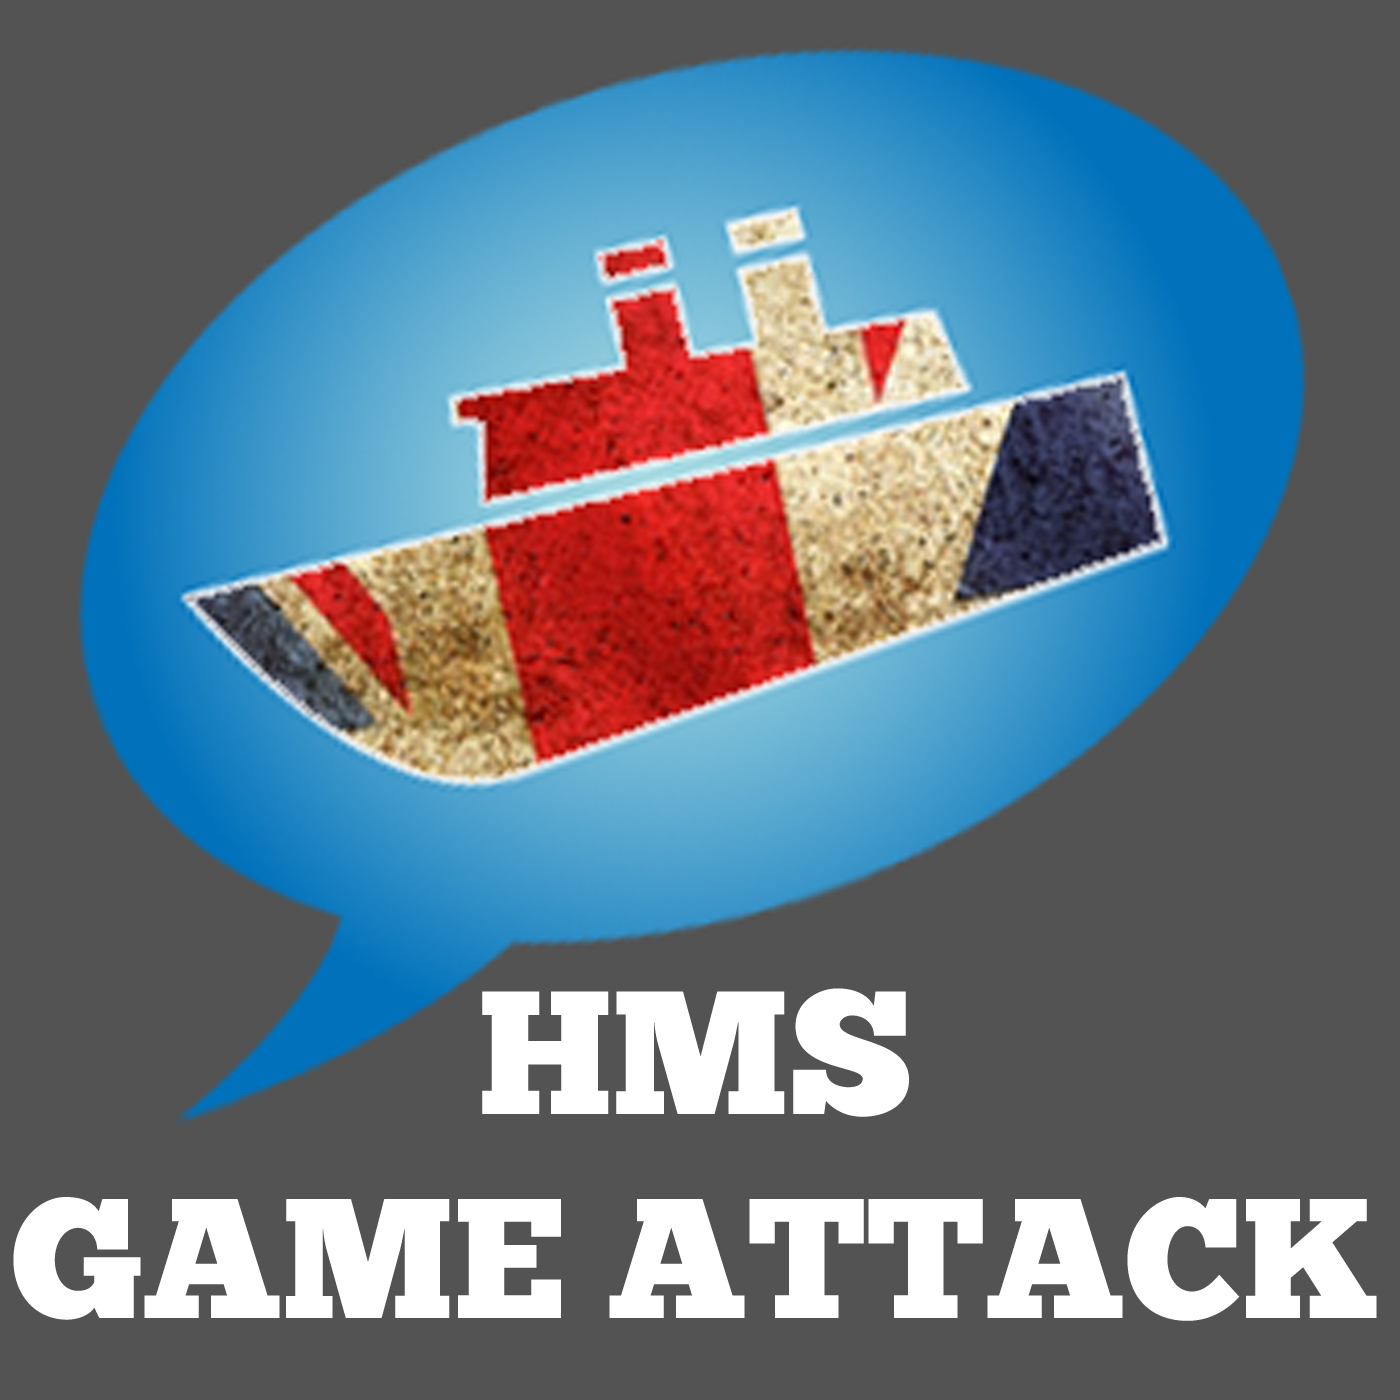 HMS Game Attack #11 – Ed Balls